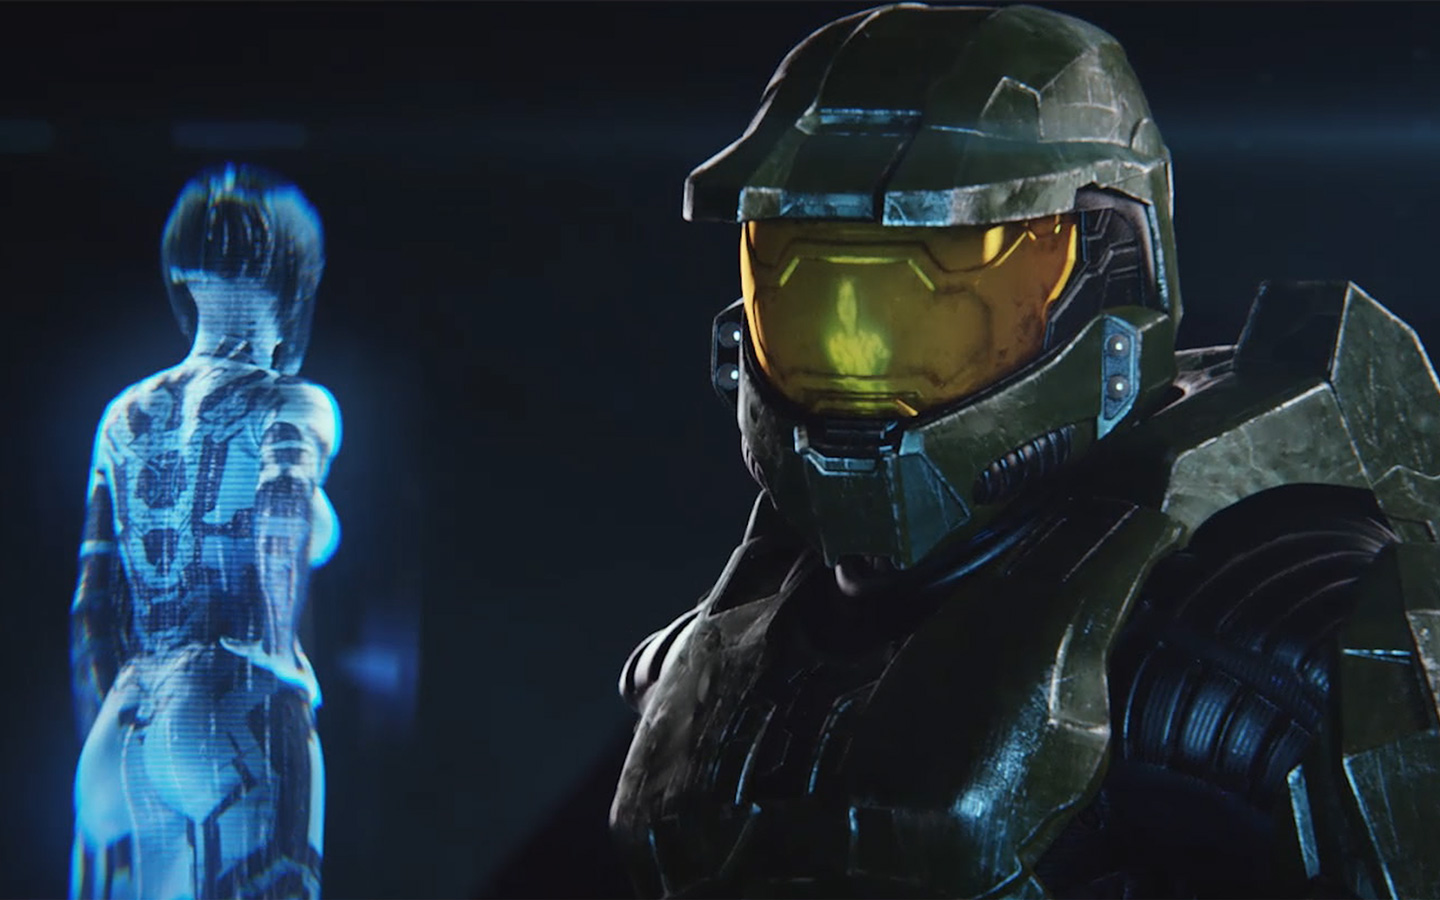 Halo 2 Wallpaper in 1440x900